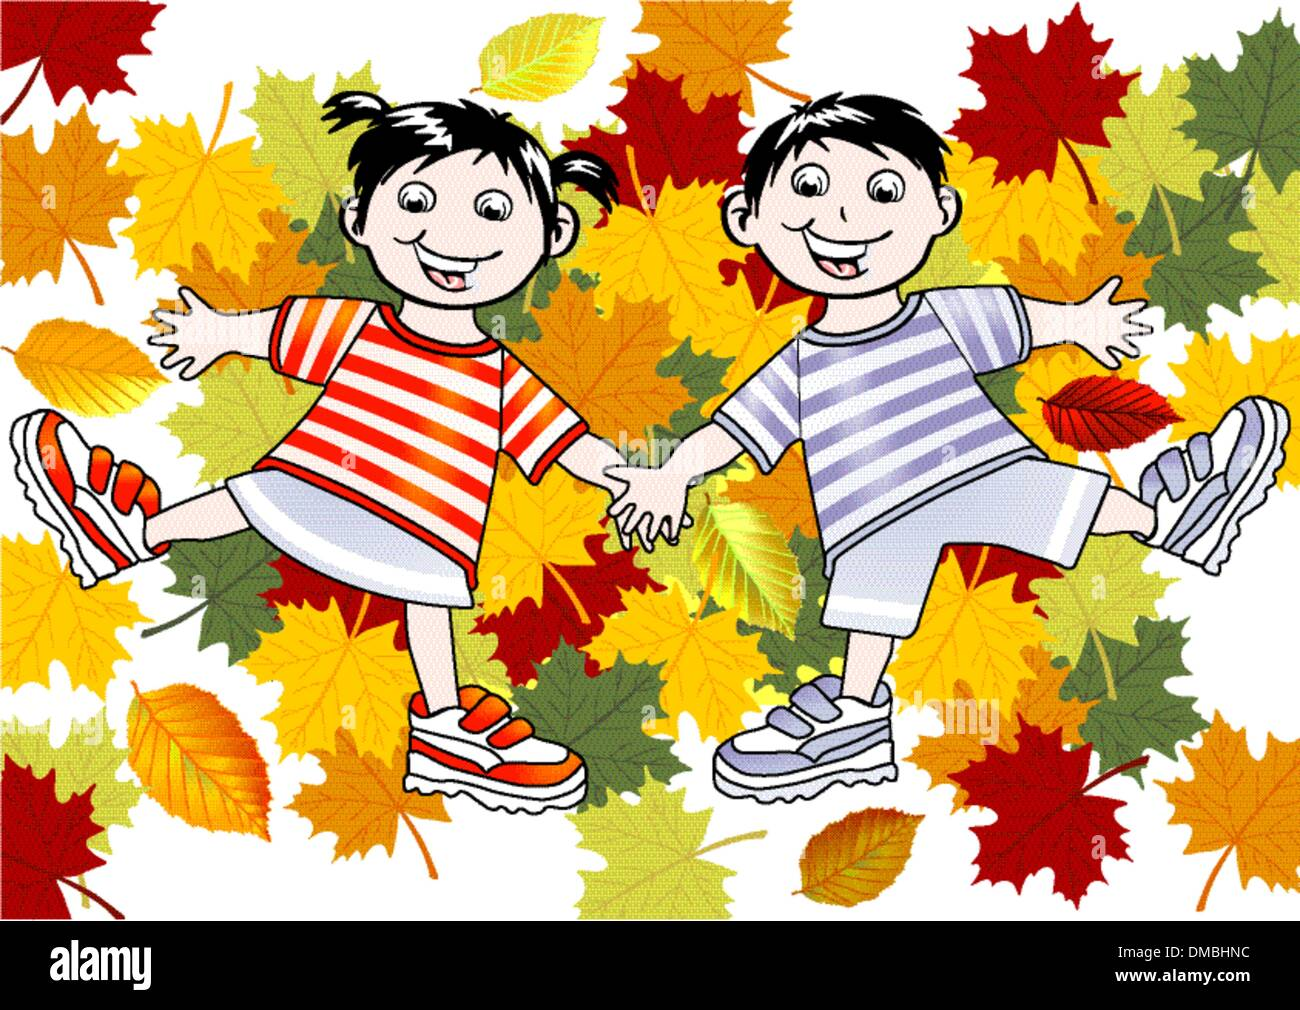 Children playing in the leaves - Stock Image